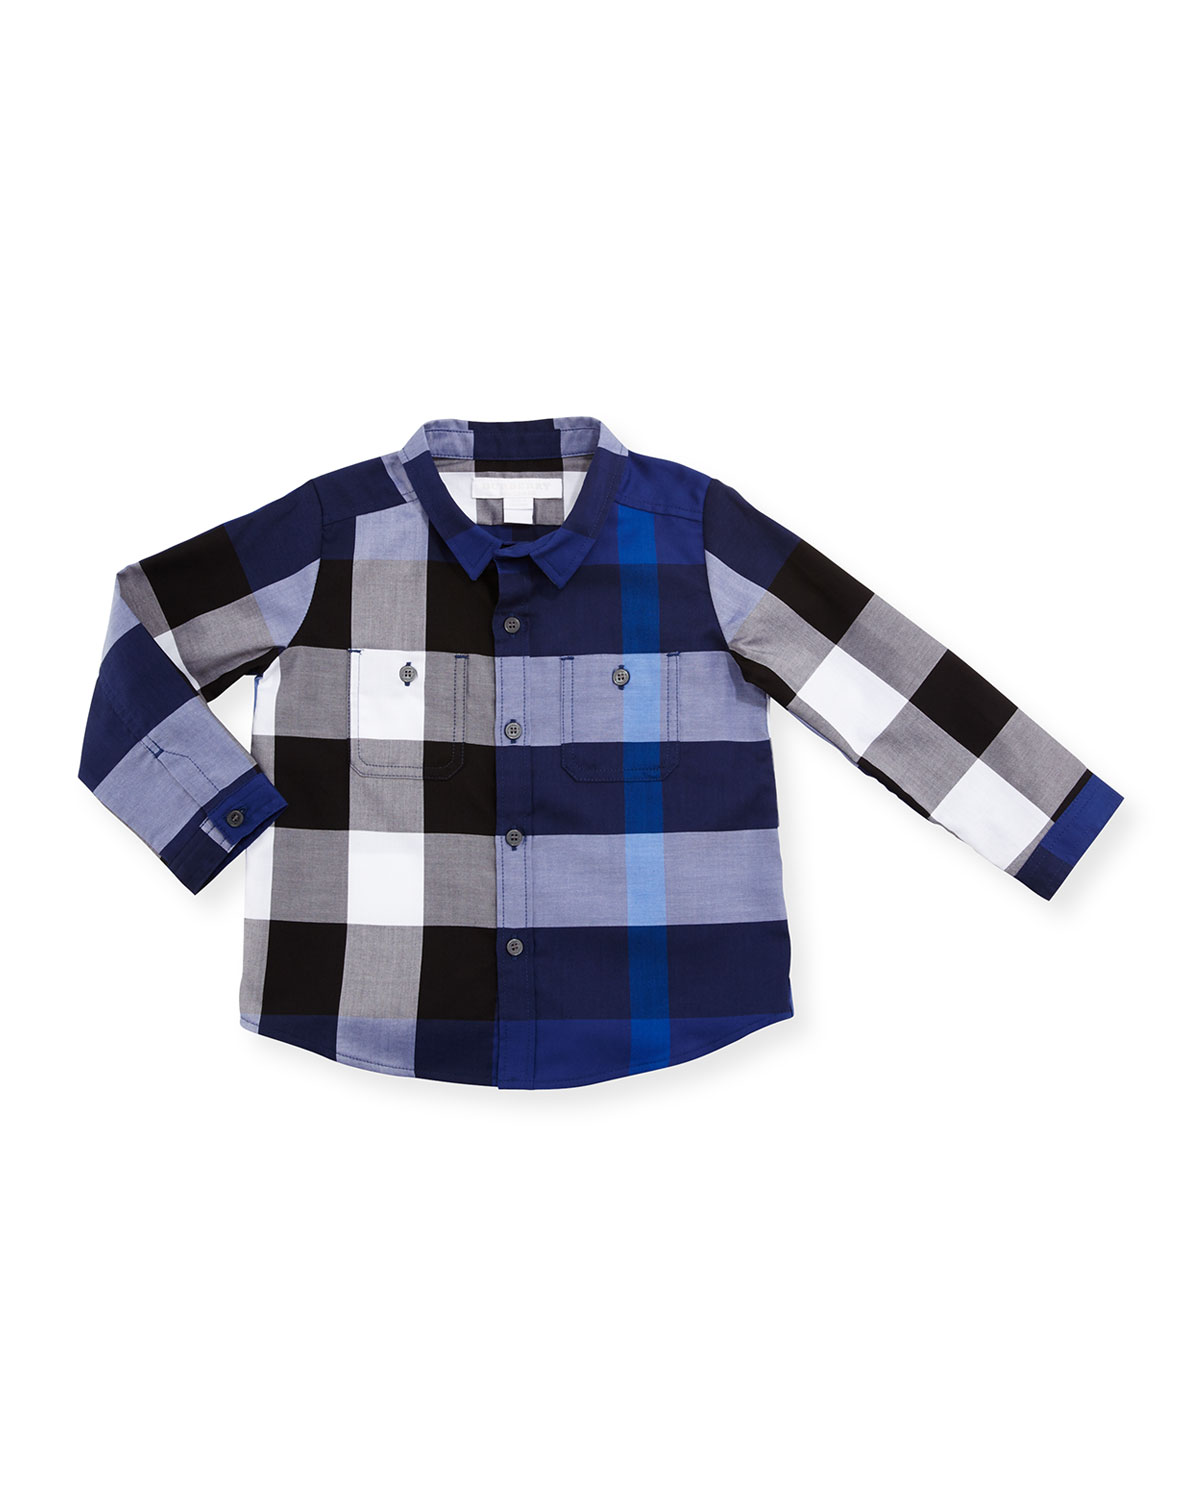 Camber Poplin Check Shirt, Bright Navy Blue, Size 6M-3